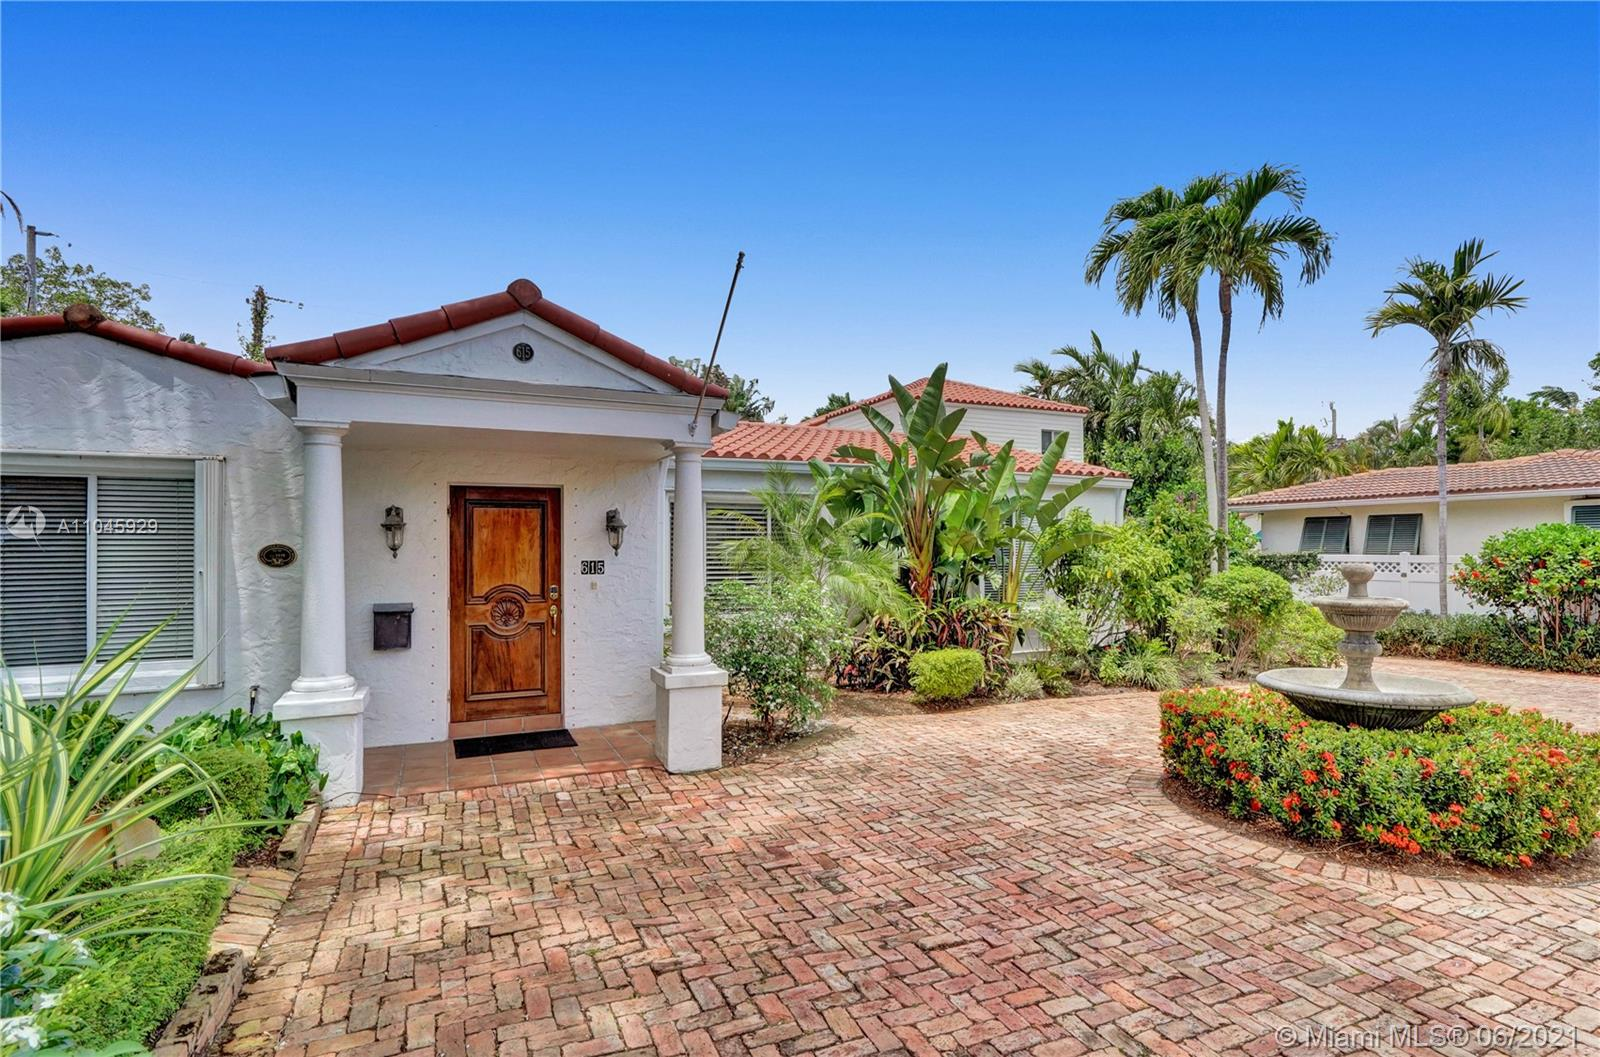 """Discover this Ft. Lauderdale Historical Society Home with so much old world character in desirable Victoria Park neighborhood. The home has charm with crystal door knobs, Stylish Dade county Hardwood floors, Chicago Style brick pavers, lush secluded backyard. Split floor plan 3/2 baths w/ Hardwood floors throughout. Amazing Retro Kitchen is perfect for the """"Chef in you"""" with 2 Farmhouse sinks, 2 Dishwashers & 6 Burner Gas stove. Bonus Sitting area & Dining room area both open to the Pool area with large private outdoor shower area. Perfect location with a 5 min. drive South to Las Olas for Restaurants & Nightlife OR 5 min. North to Galleria mall shopping near Fabulous Ft. Laud Beaches & 7 min. to the airport. Annual fees includes Water, Lawn, pool, gas and electricity at a cap amount"""